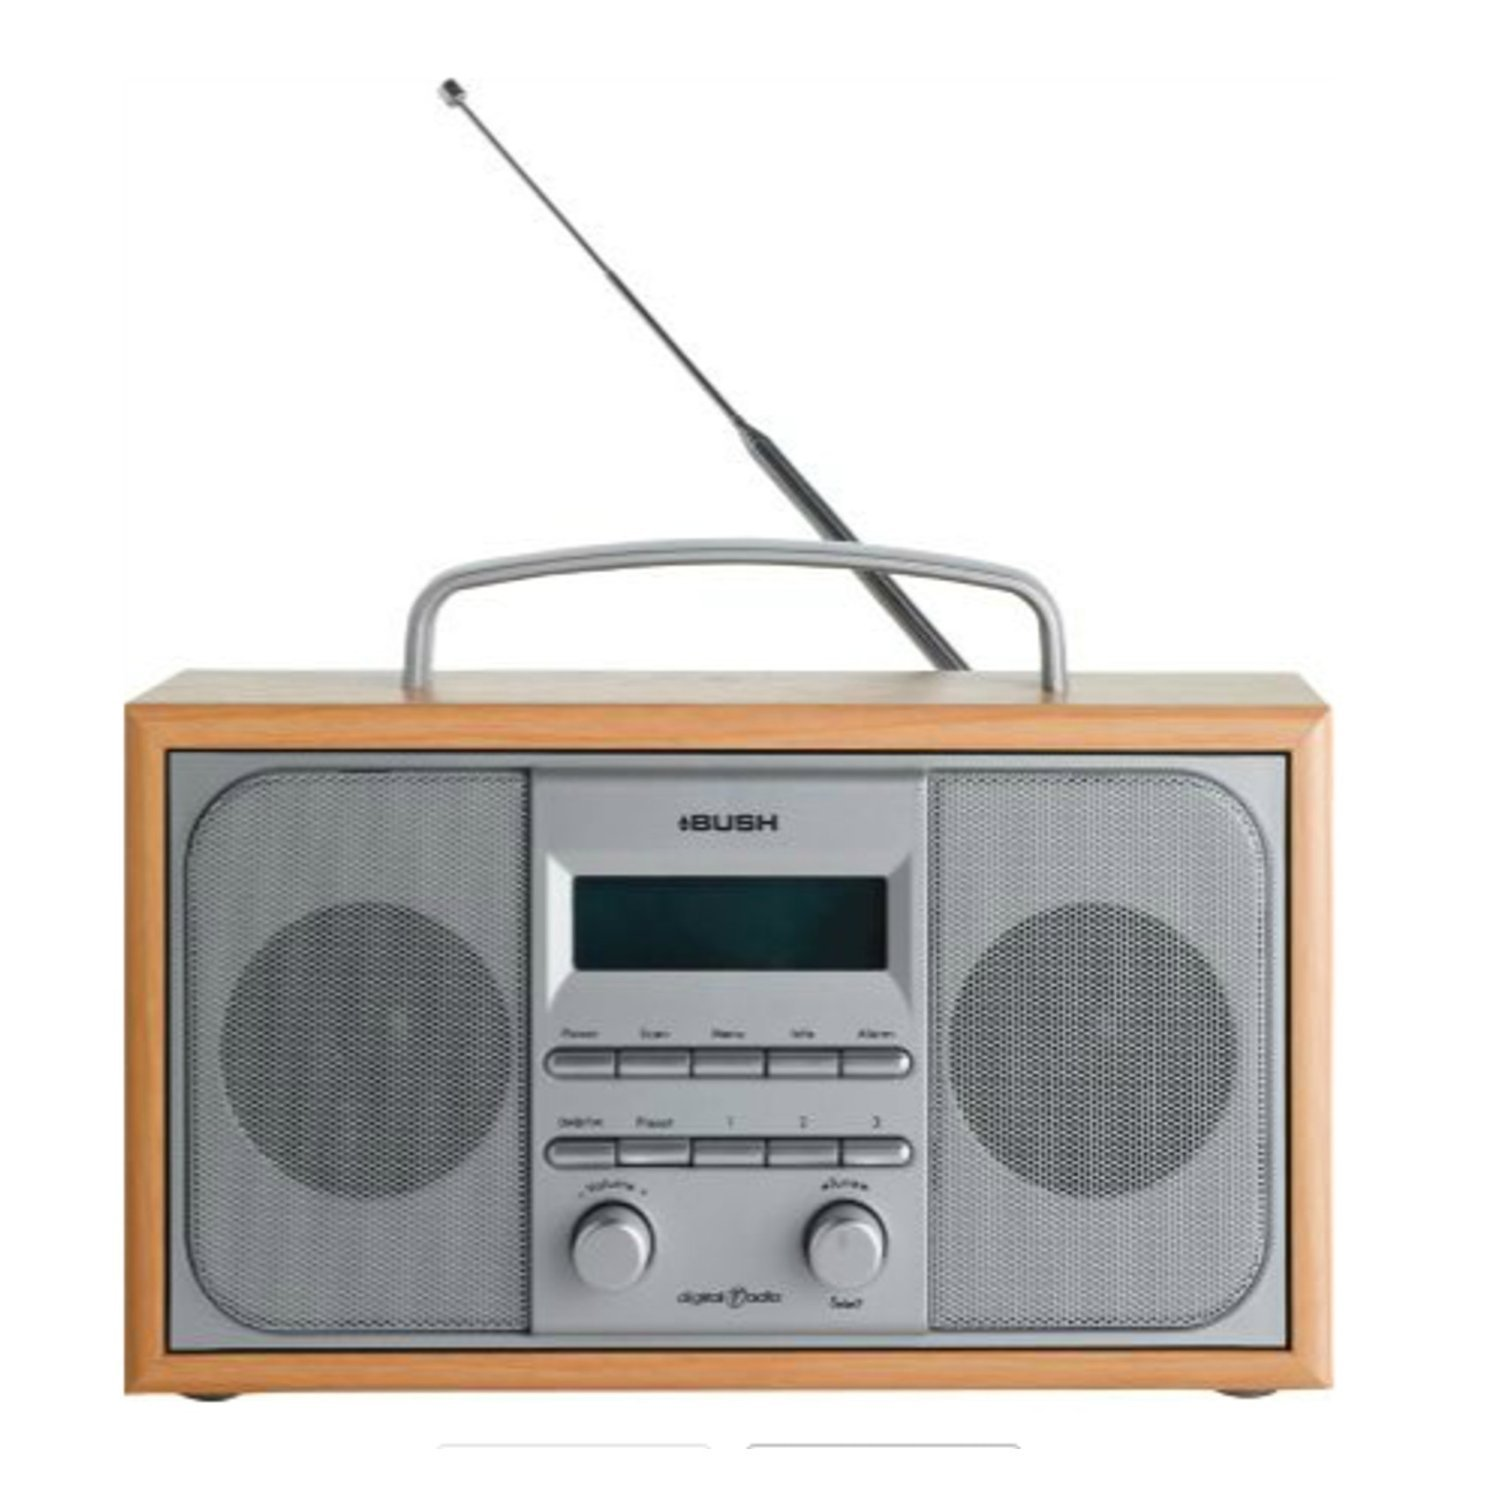 bush arden dab fm stereo radio alarm clock wooden case ebay. Black Bedroom Furniture Sets. Home Design Ideas